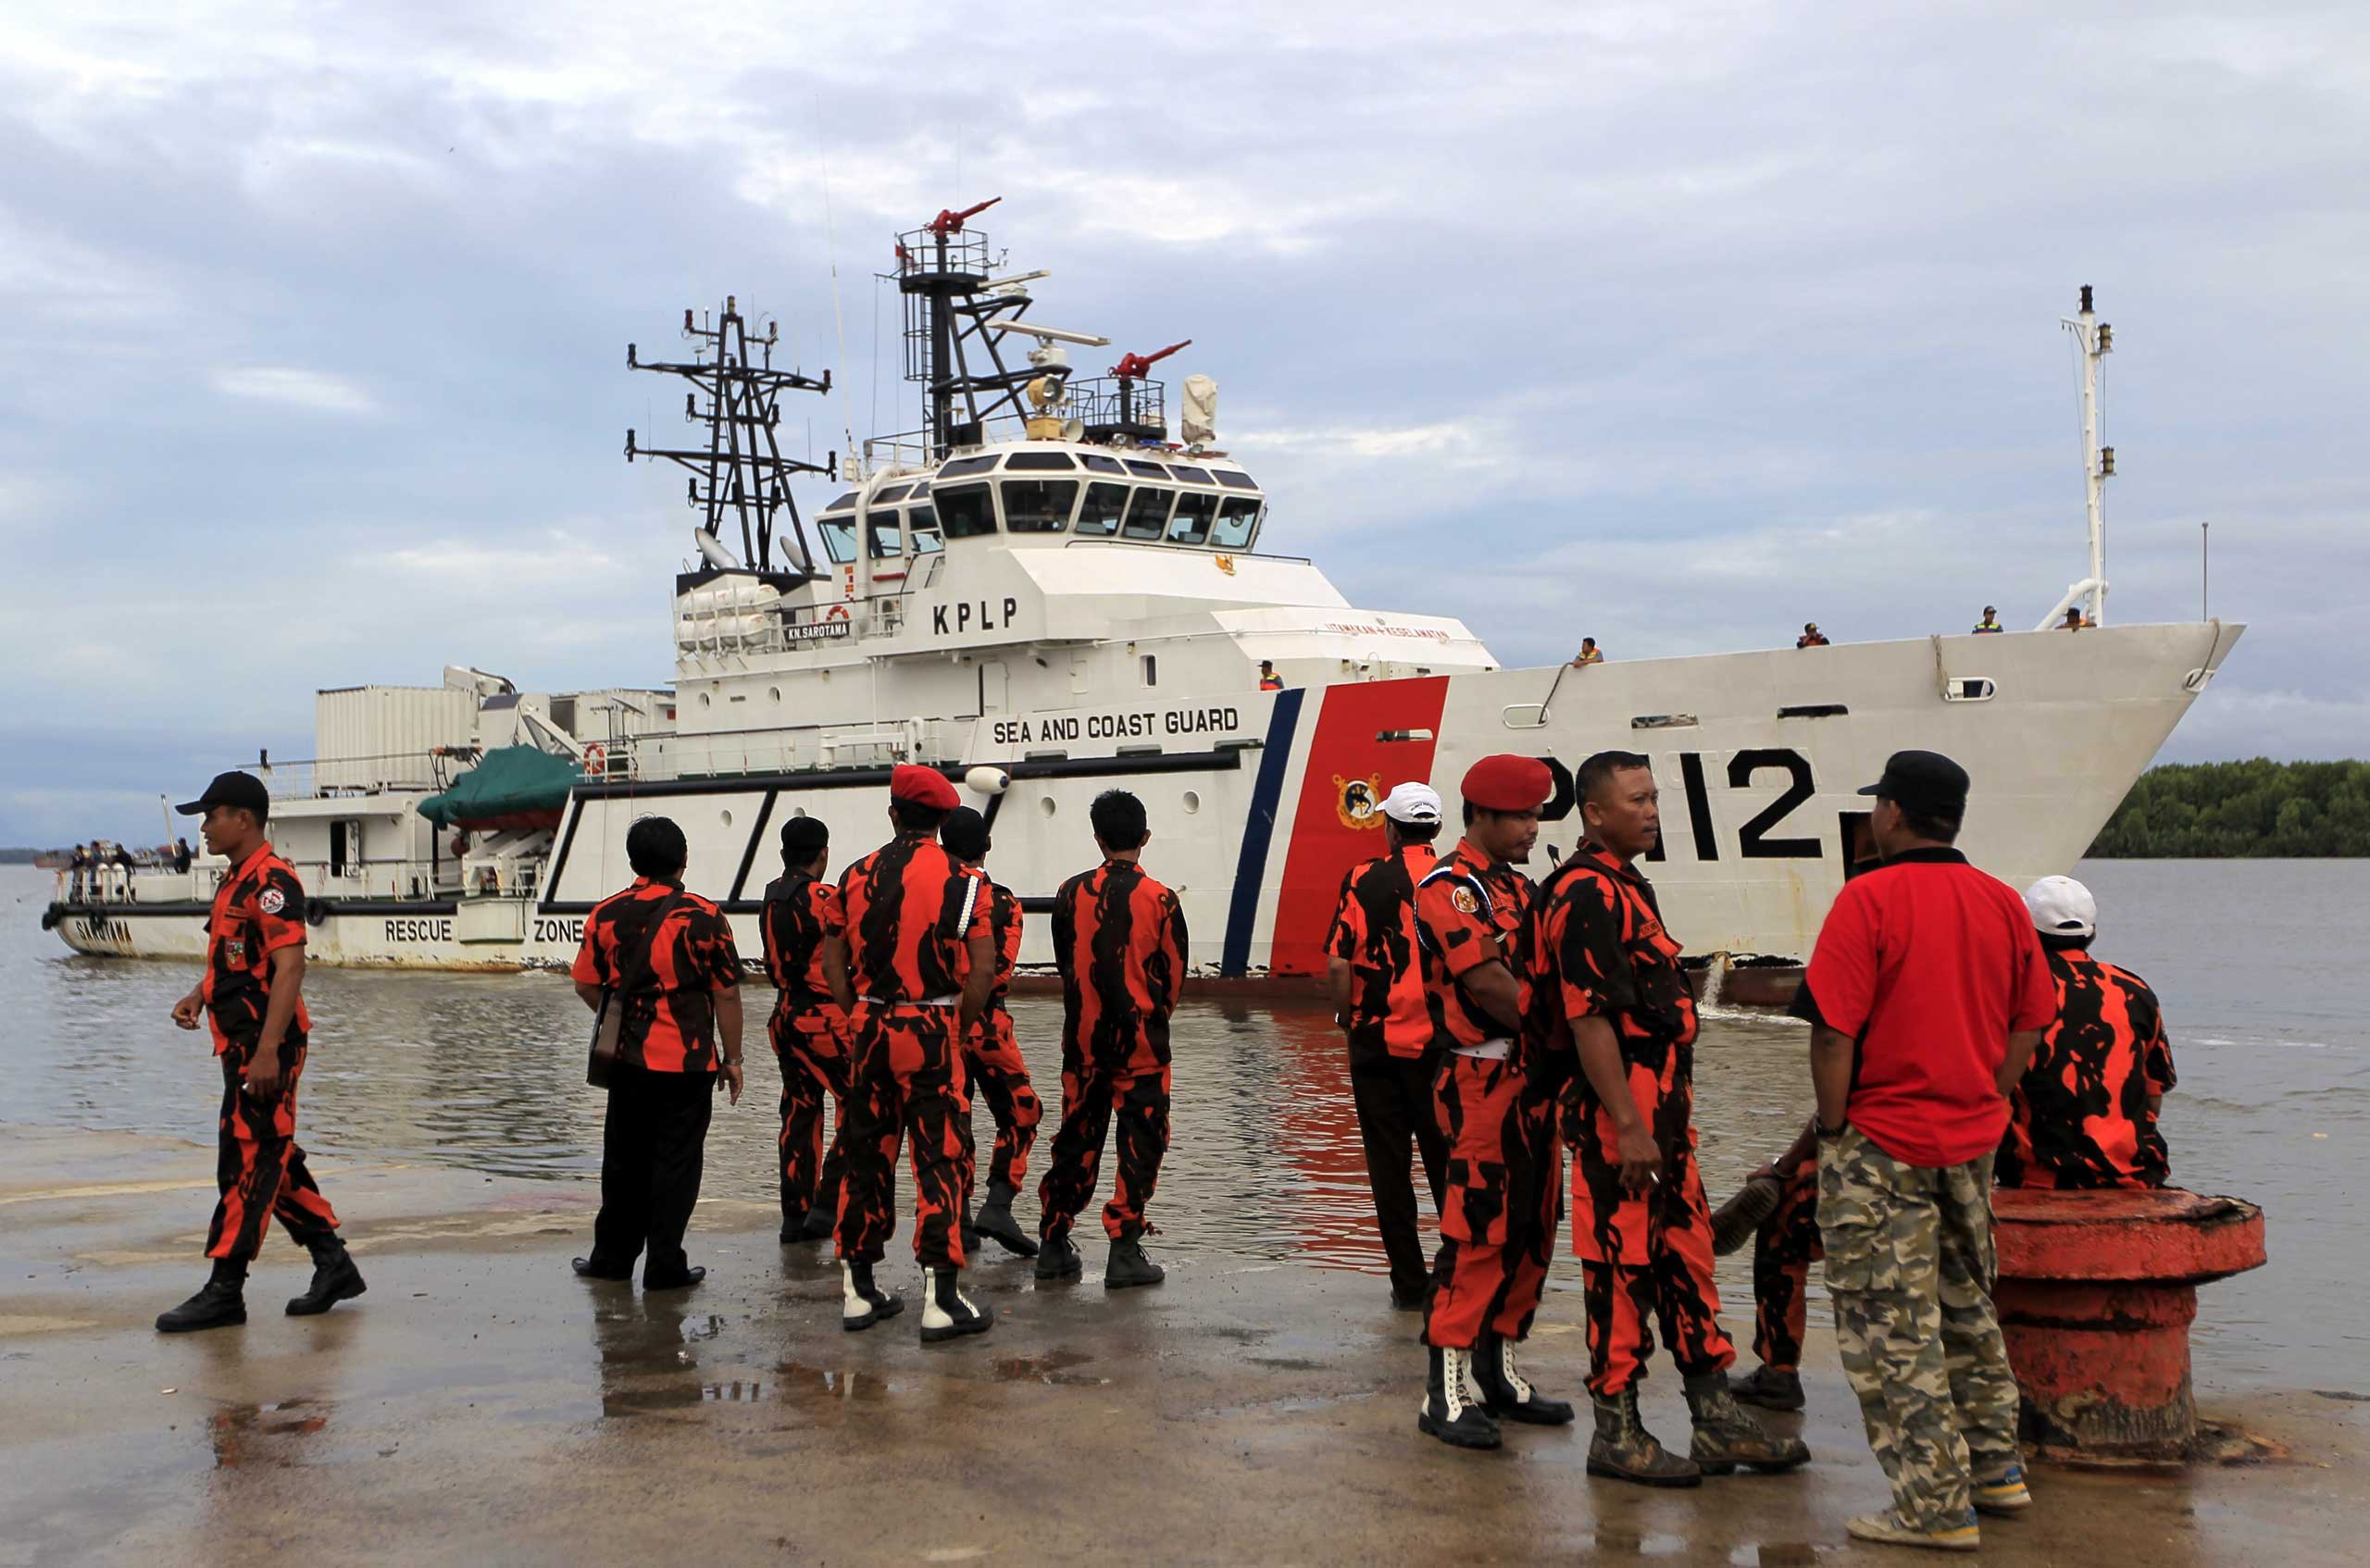 Indonesia's Sea and Coast Guard ship  during a search and rescue operation as they search for the missing AirAsia plane on Dec. 31.